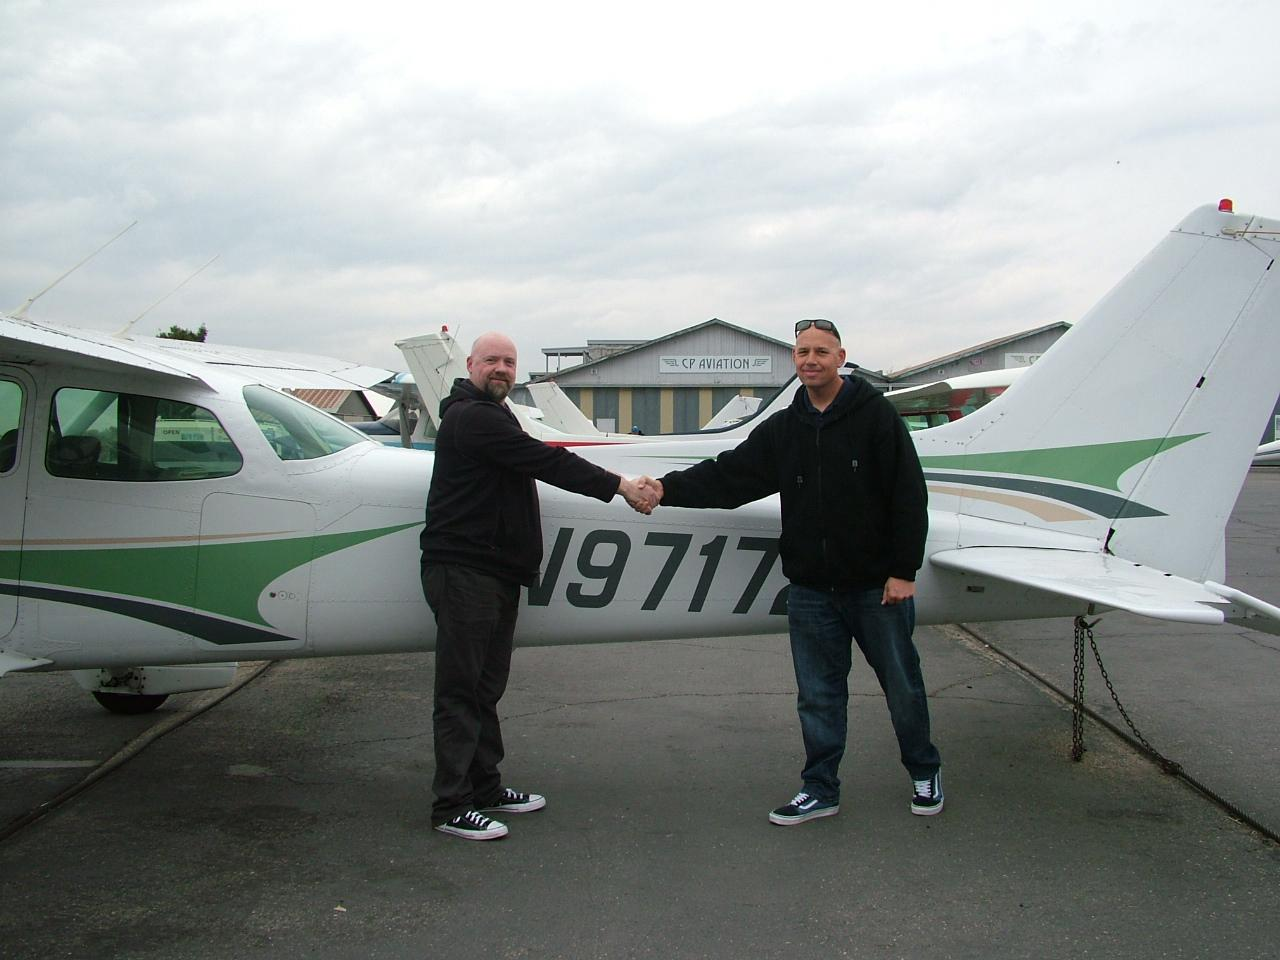 First Solo of the New Year - James Walker!